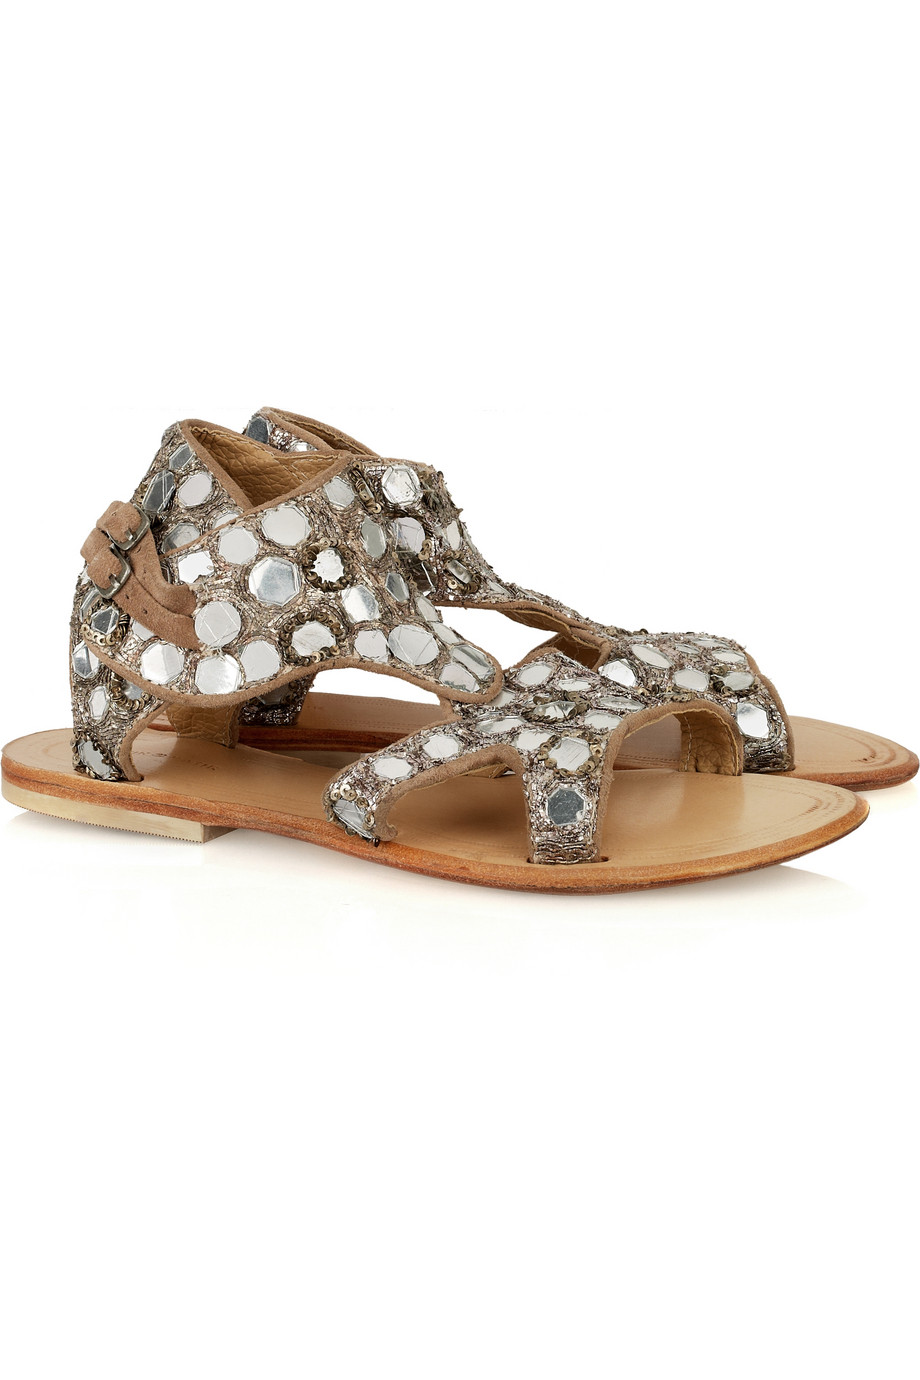 Antik Batik Lucinda Mirrored Sandals in Silver (white)